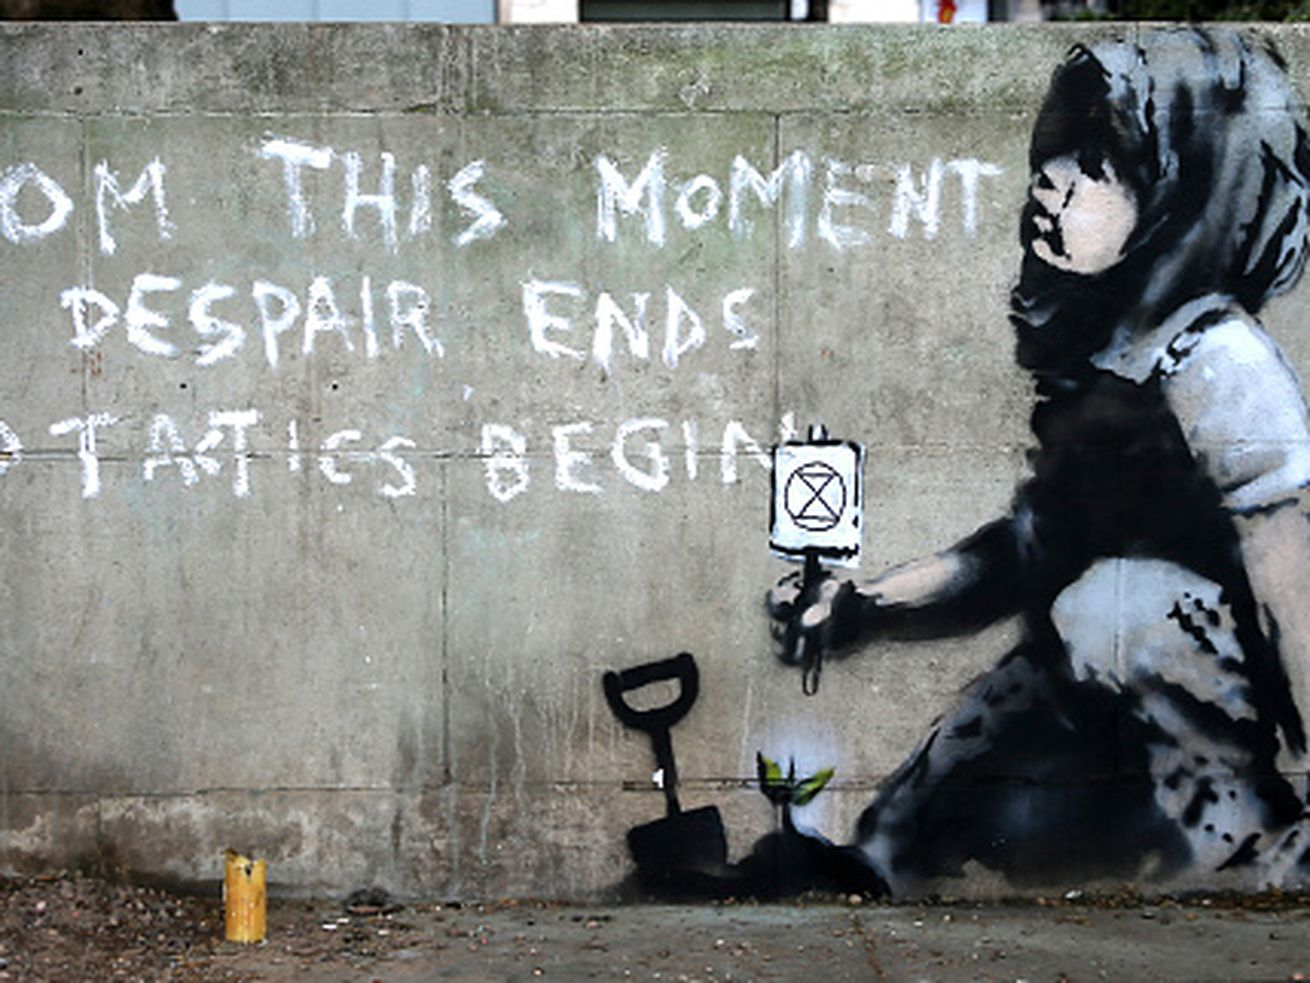 Graffiti artwork, suspected to have been created by the British street artist Banksy, is pictured opposite the environmental protest group Extinction Rebellion's camp at Marble Arch in London on April 26, 2019.